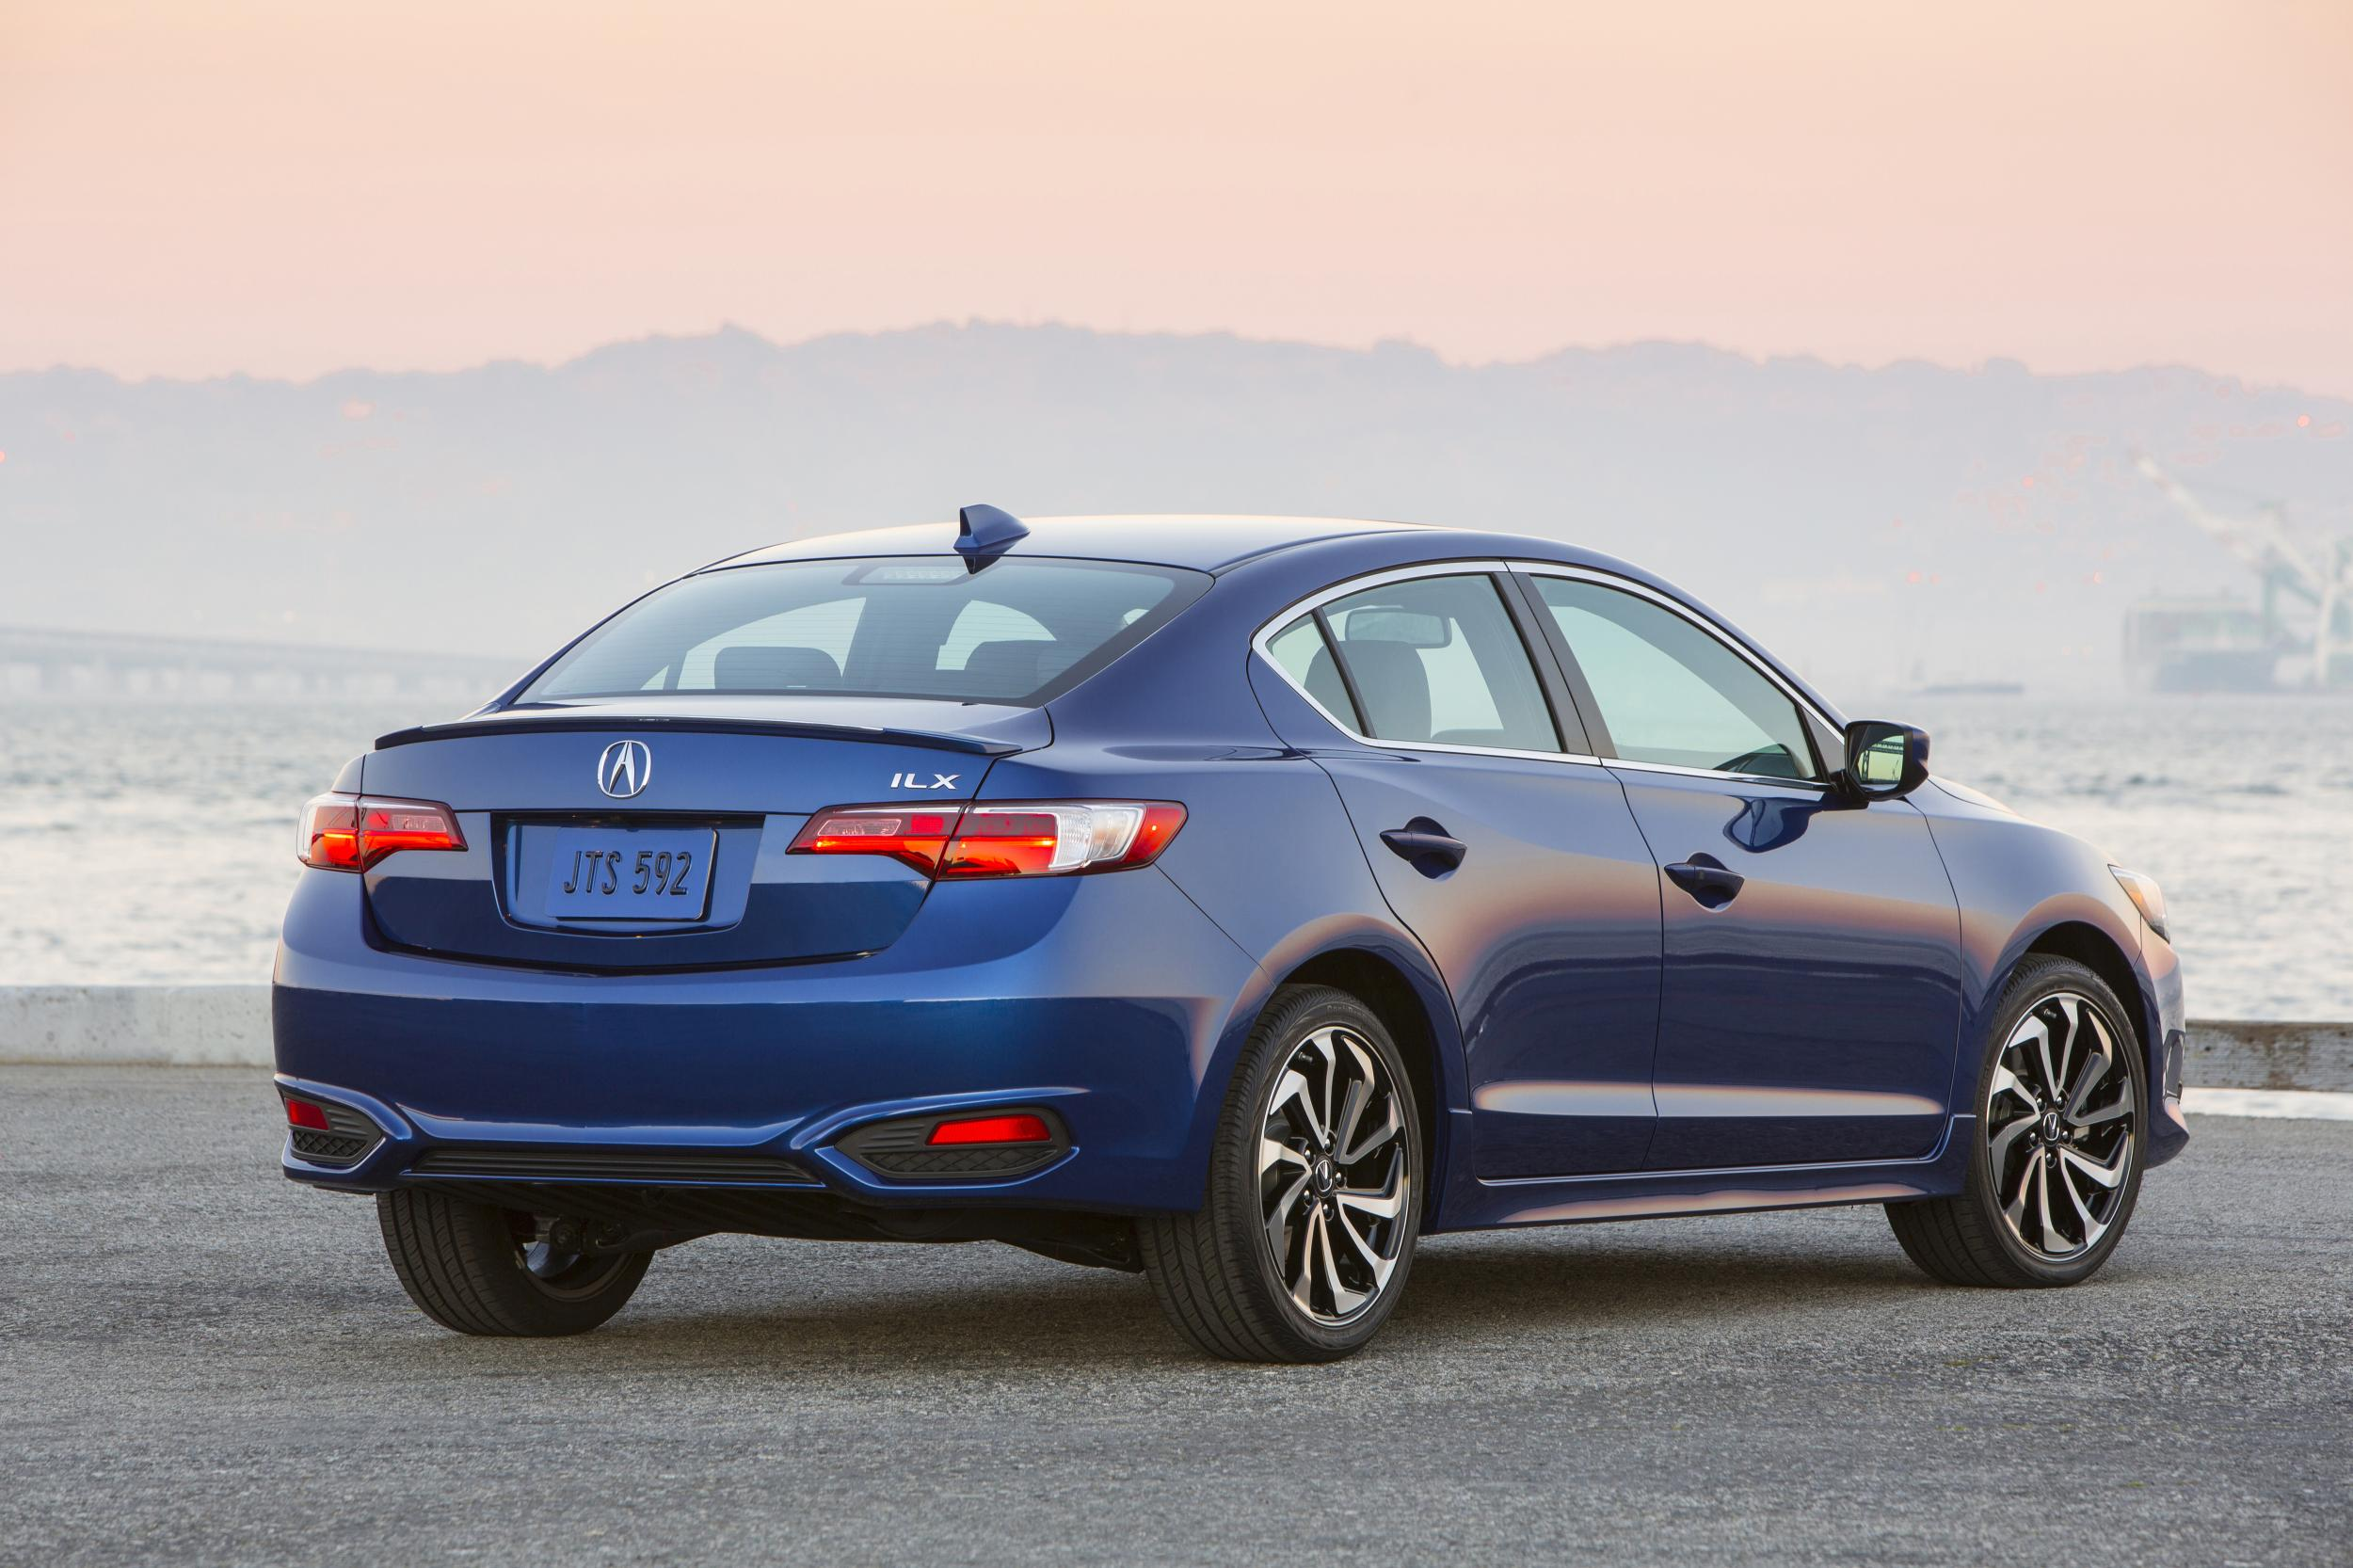 2016 acura ilx pricing and fuel economy ratings divulged autoevolution. Black Bedroom Furniture Sets. Home Design Ideas